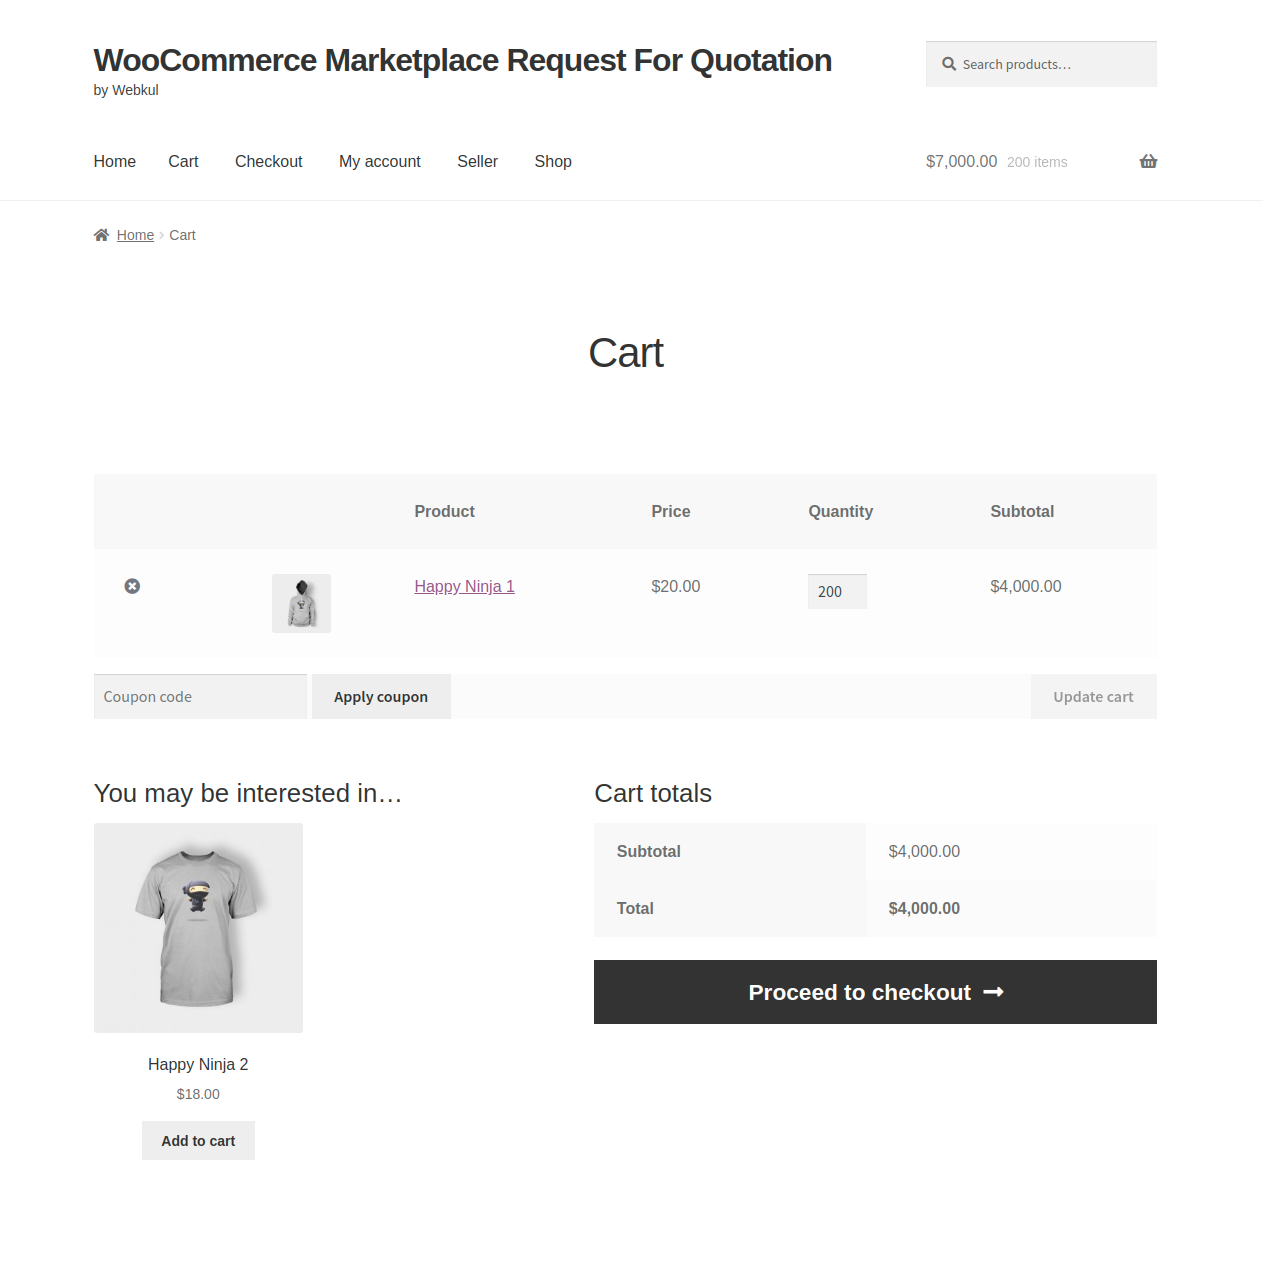 webkul-woocommerce-marketplace-request-for-quotation-cart-page